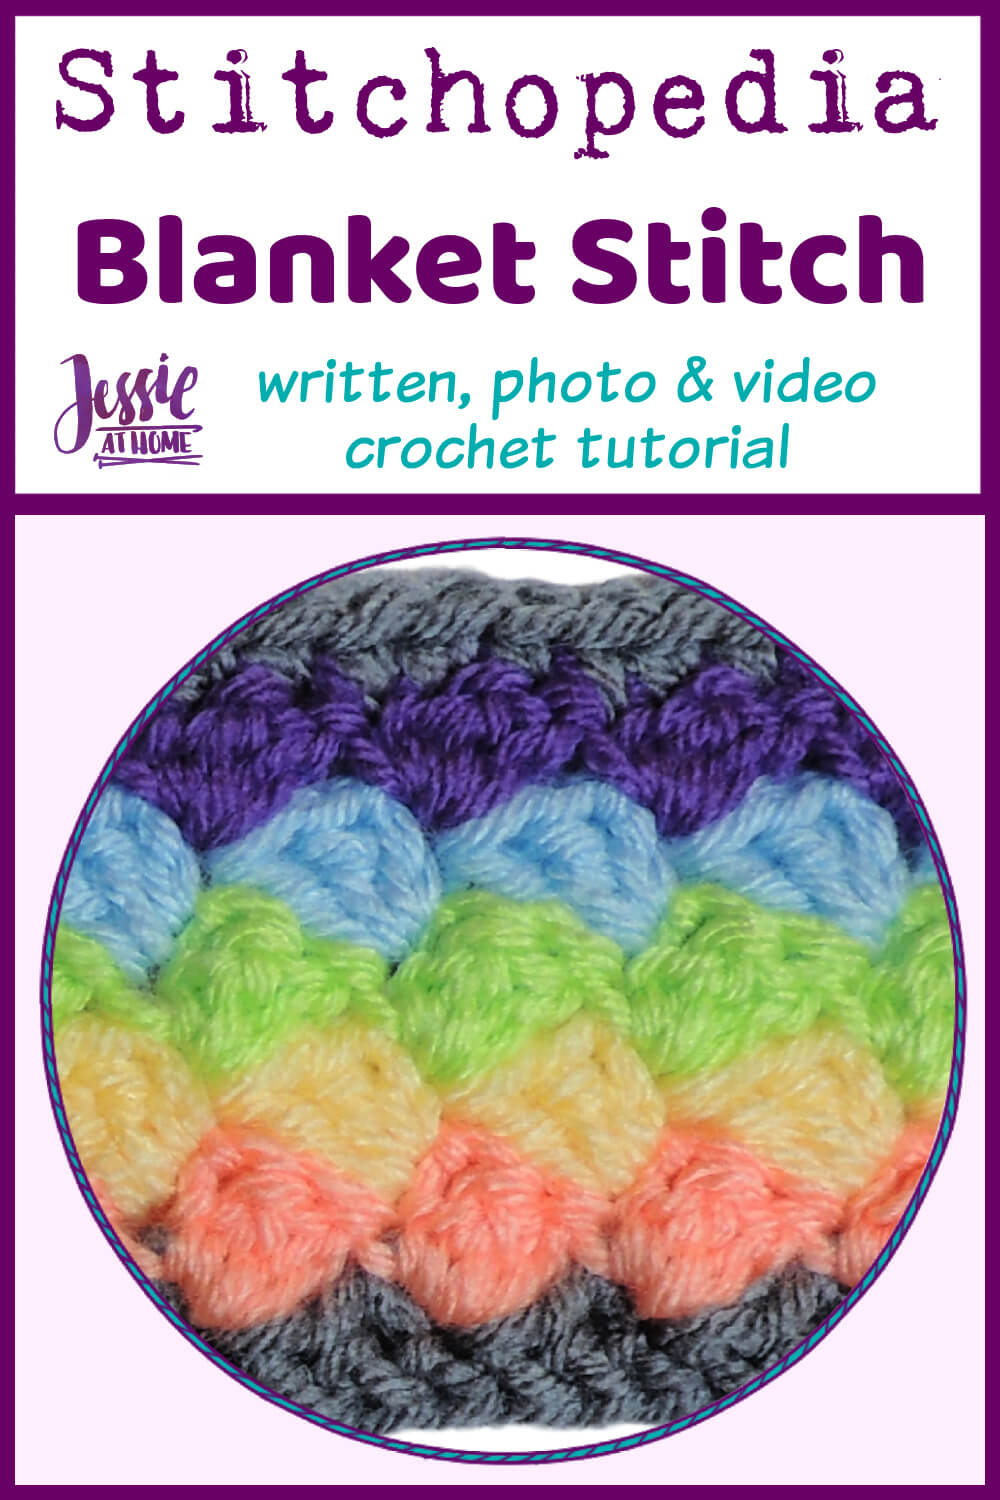 Blanket Stitch - written, photo, and video crochet tutorial